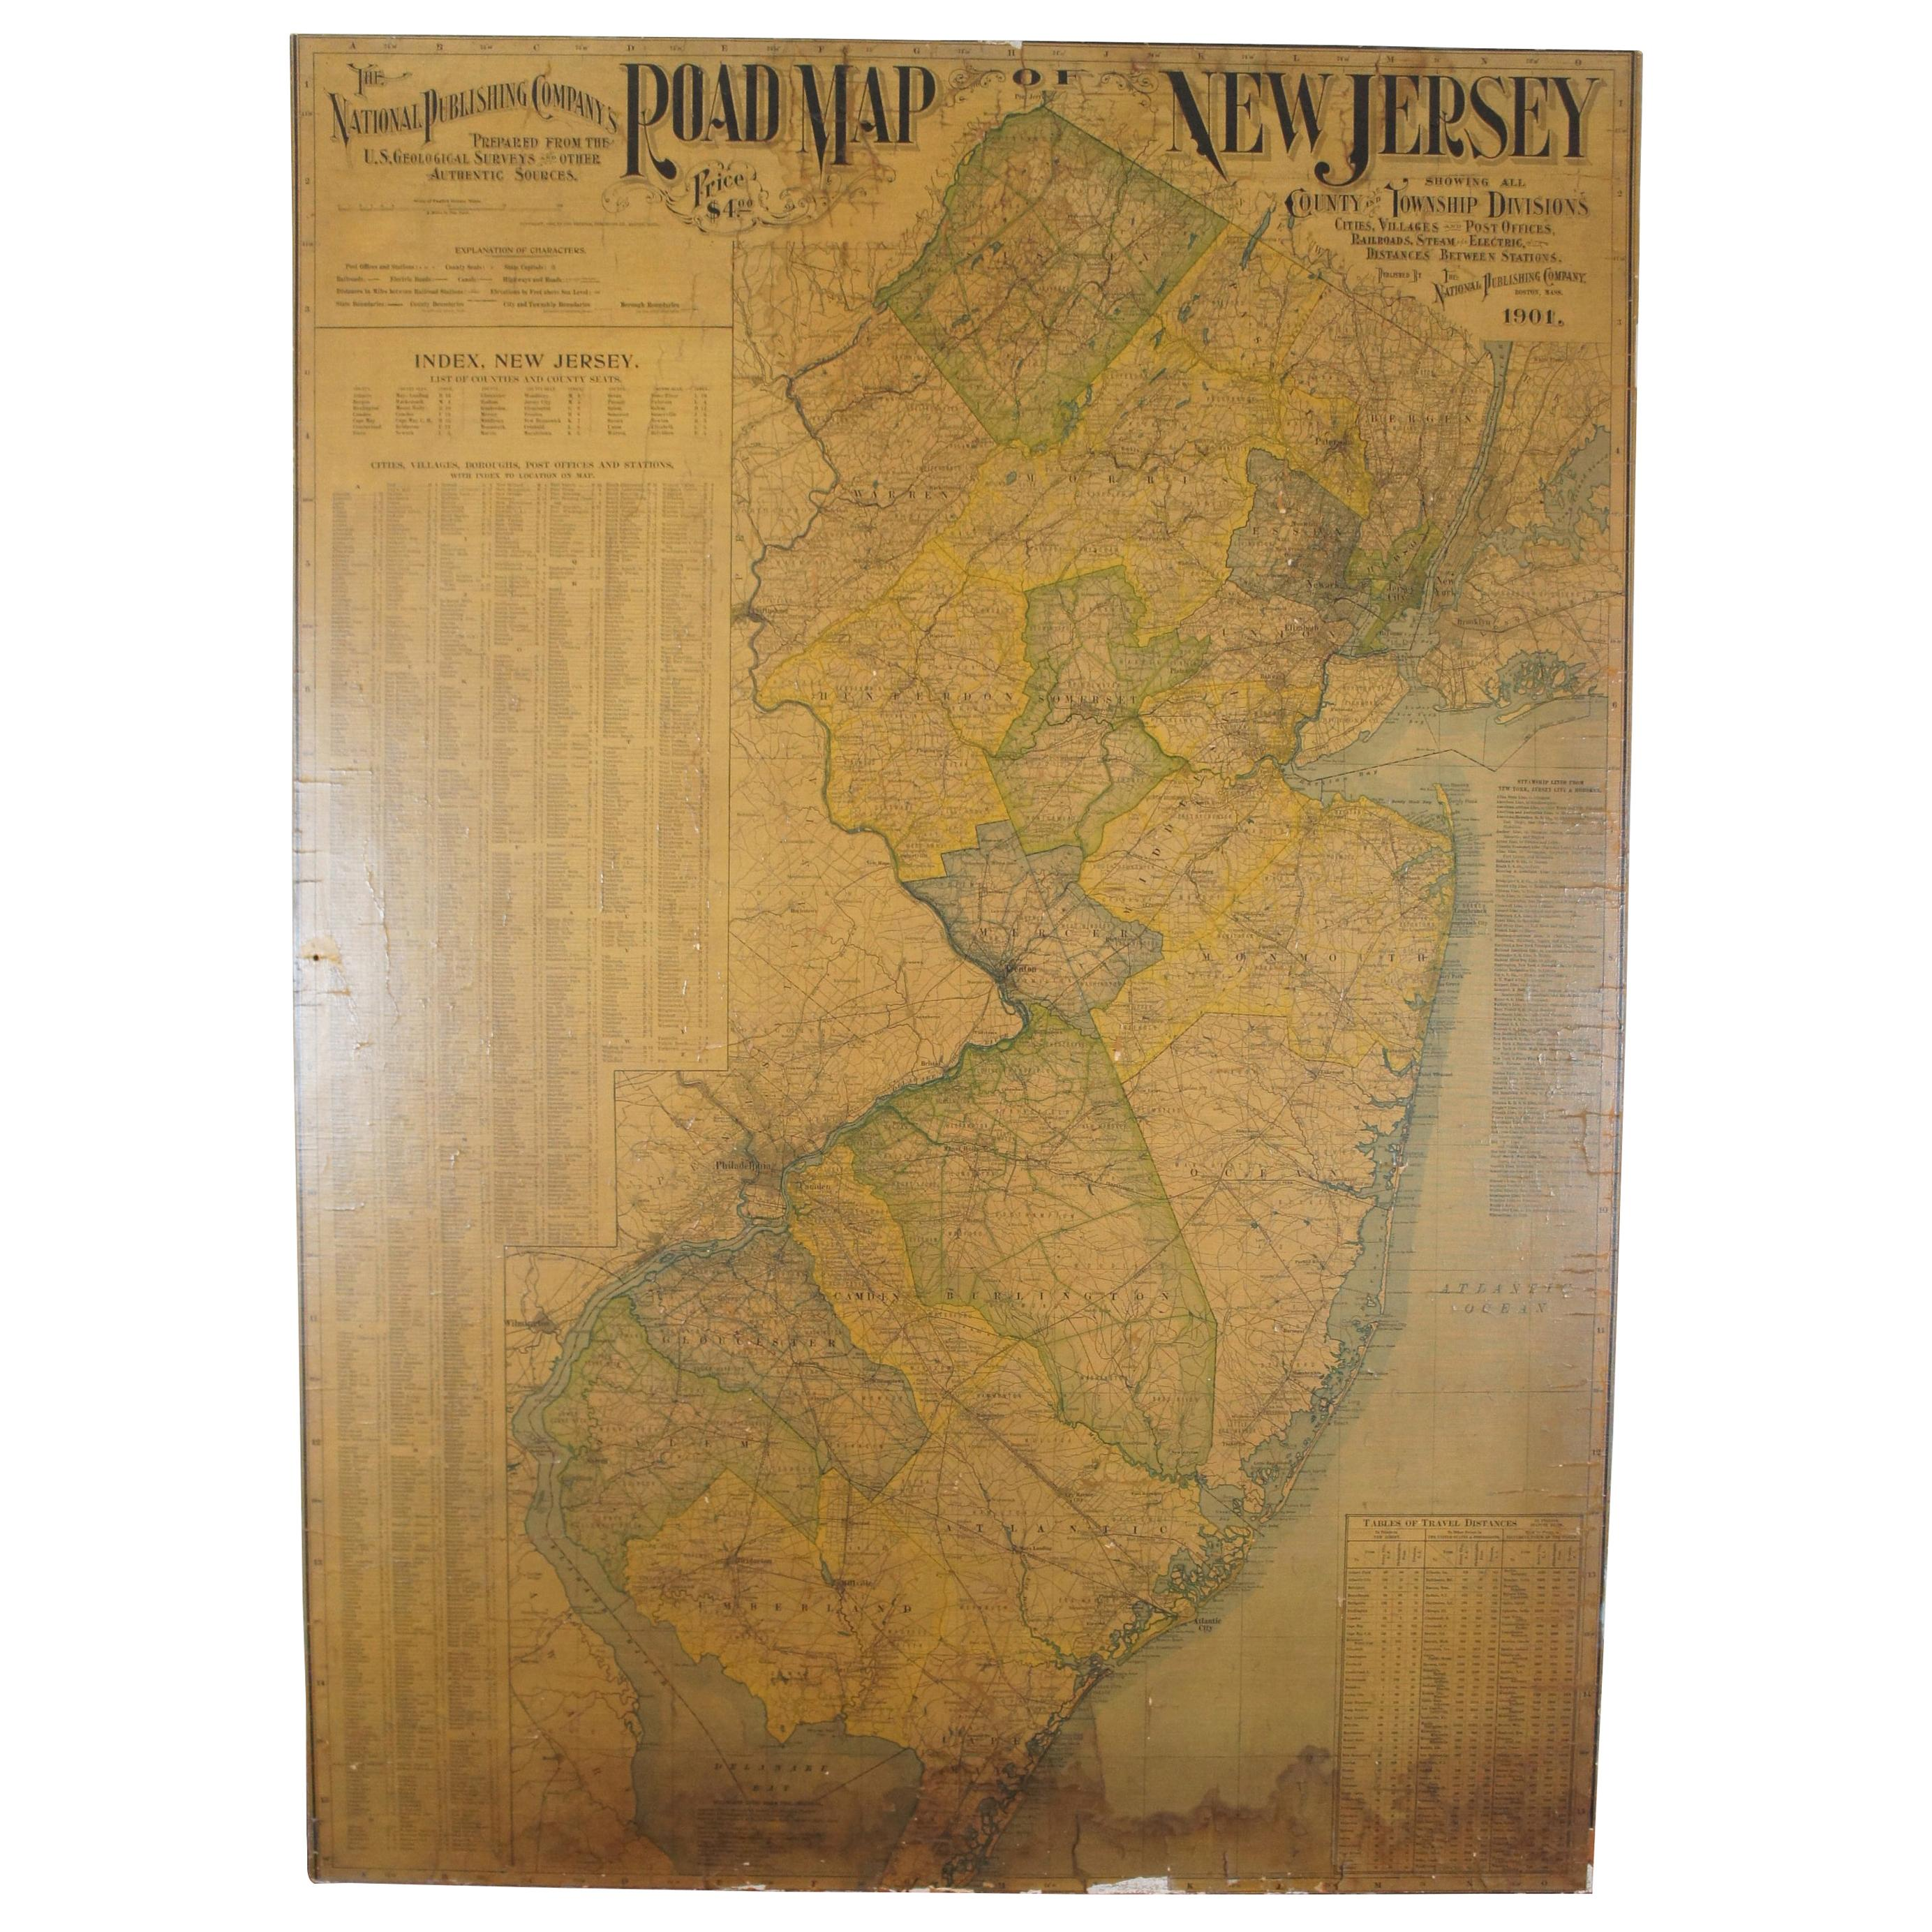 Antique 1901 National Publishing Company's Road Map of New Jersey Geological